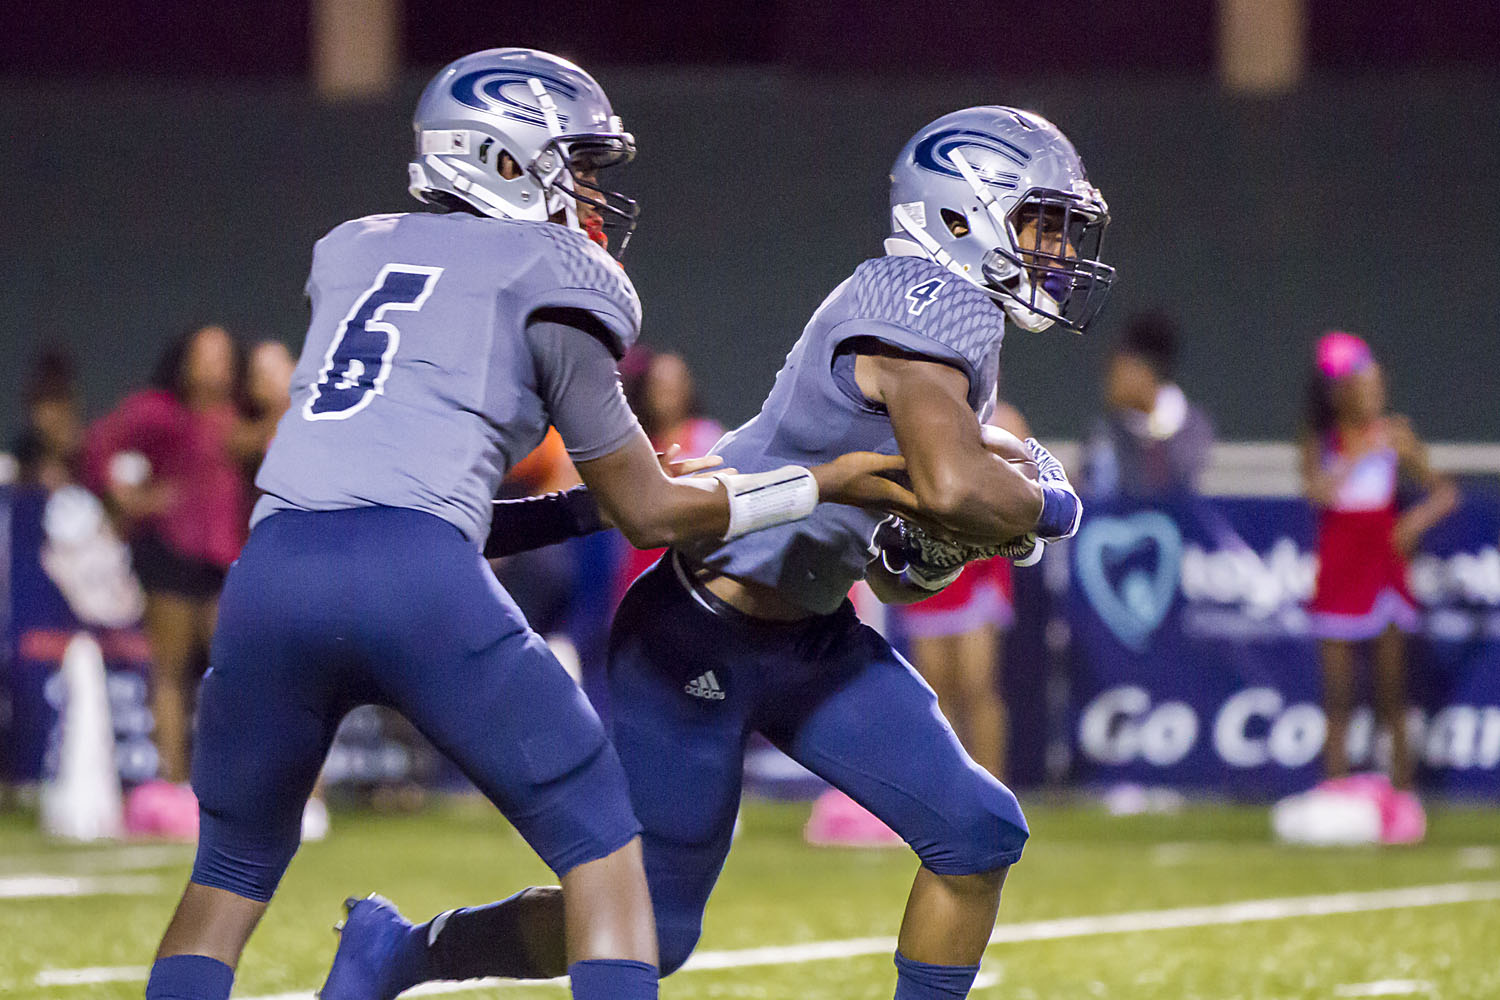 Week 2 Preview: Clay-Chalkville at James Clemens